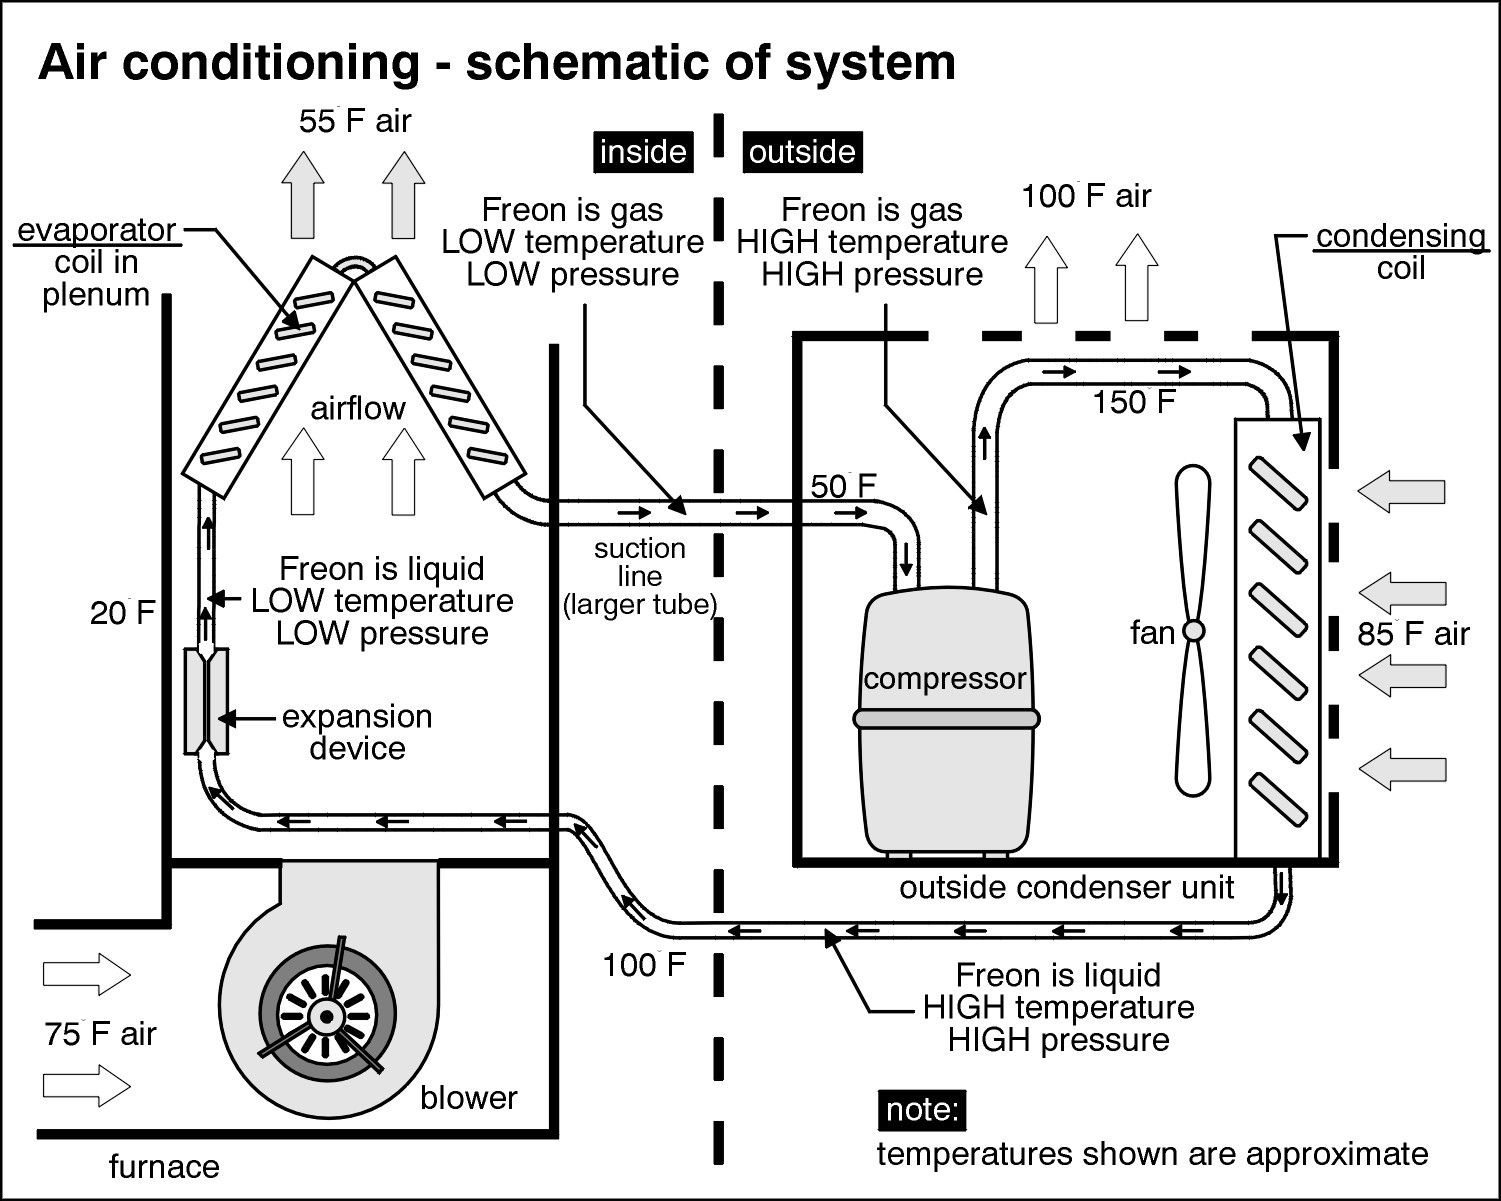 central air conditioning system diagram before you call a ac repair man visit my blog for some tips on how to save thousands in ac repairs  [ 1501 x 1201 Pixel ]